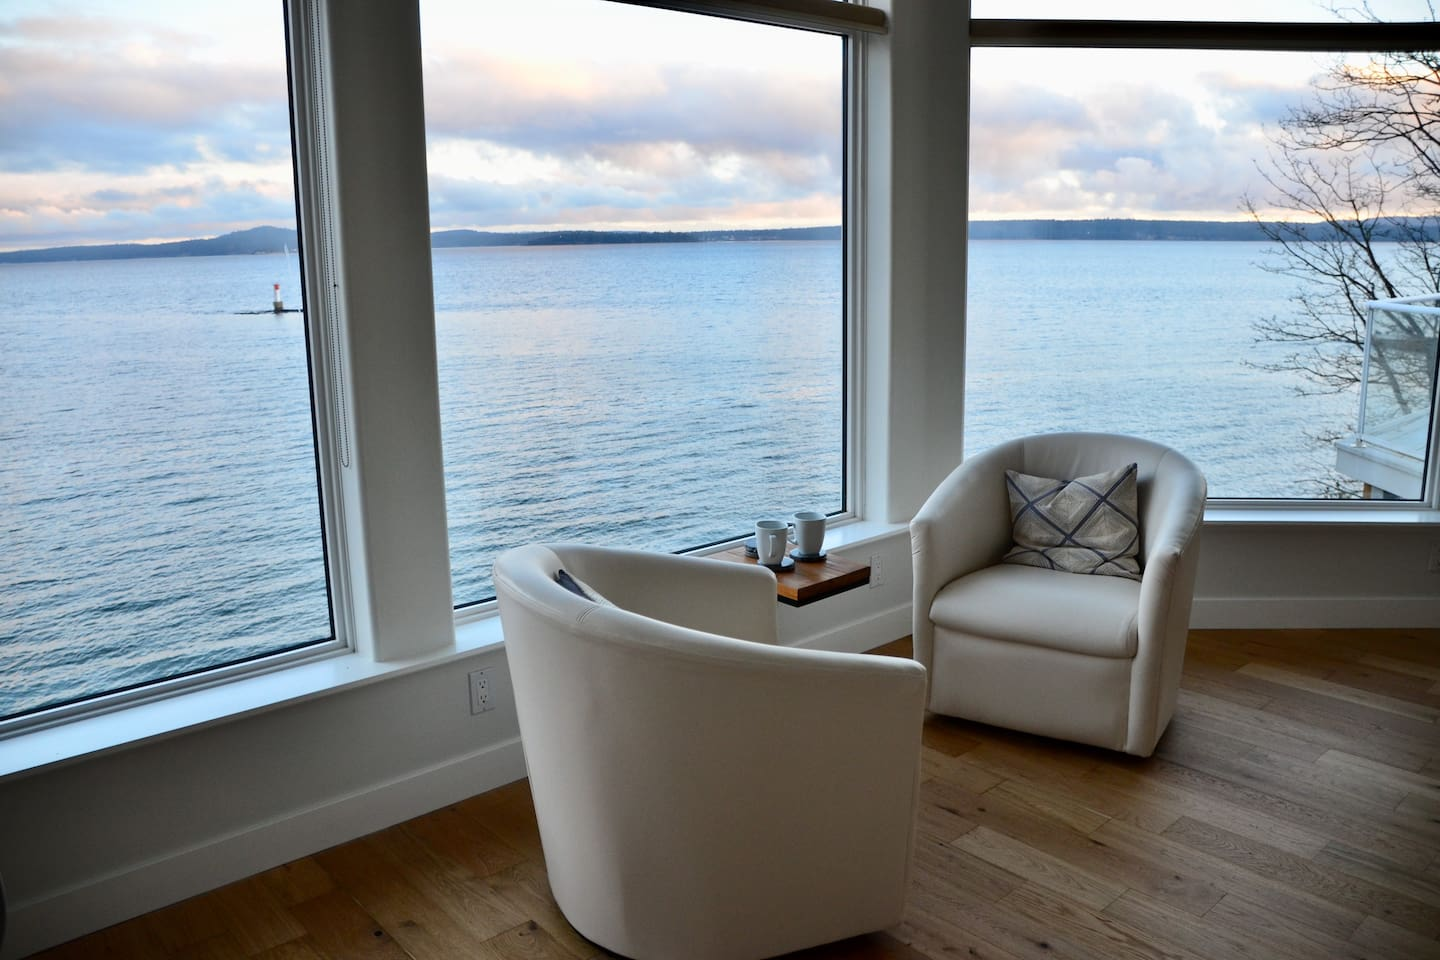 Swivel chairs to enjoy the ocean (it feels like you are on a boat) or join the kitchen conversations